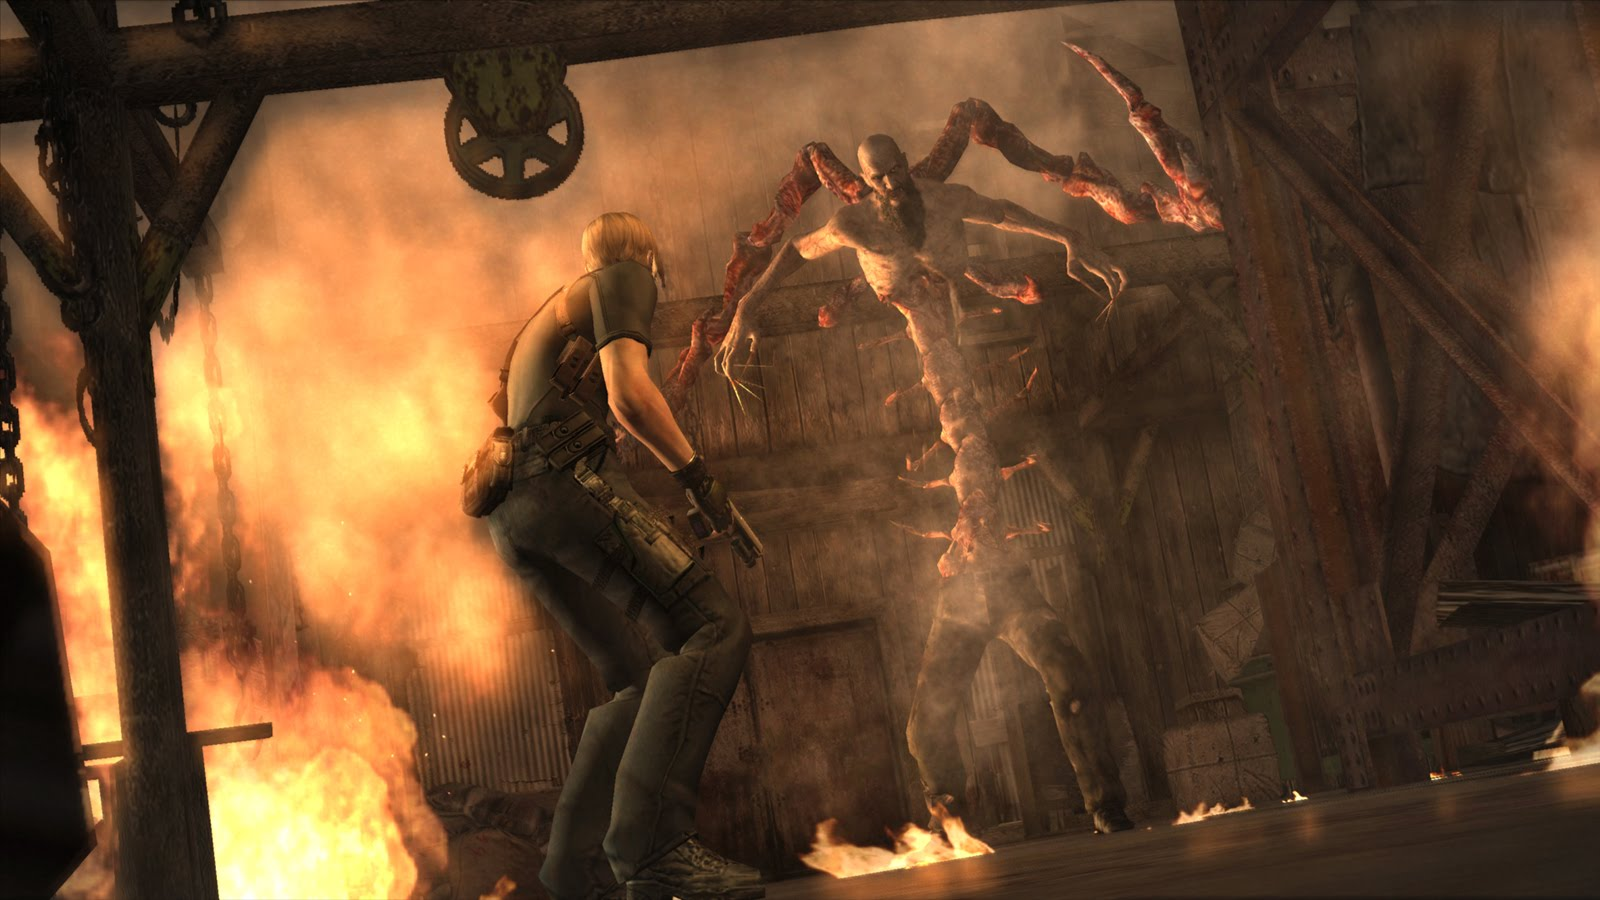 Resident Evil 4 launches on Wii U this week